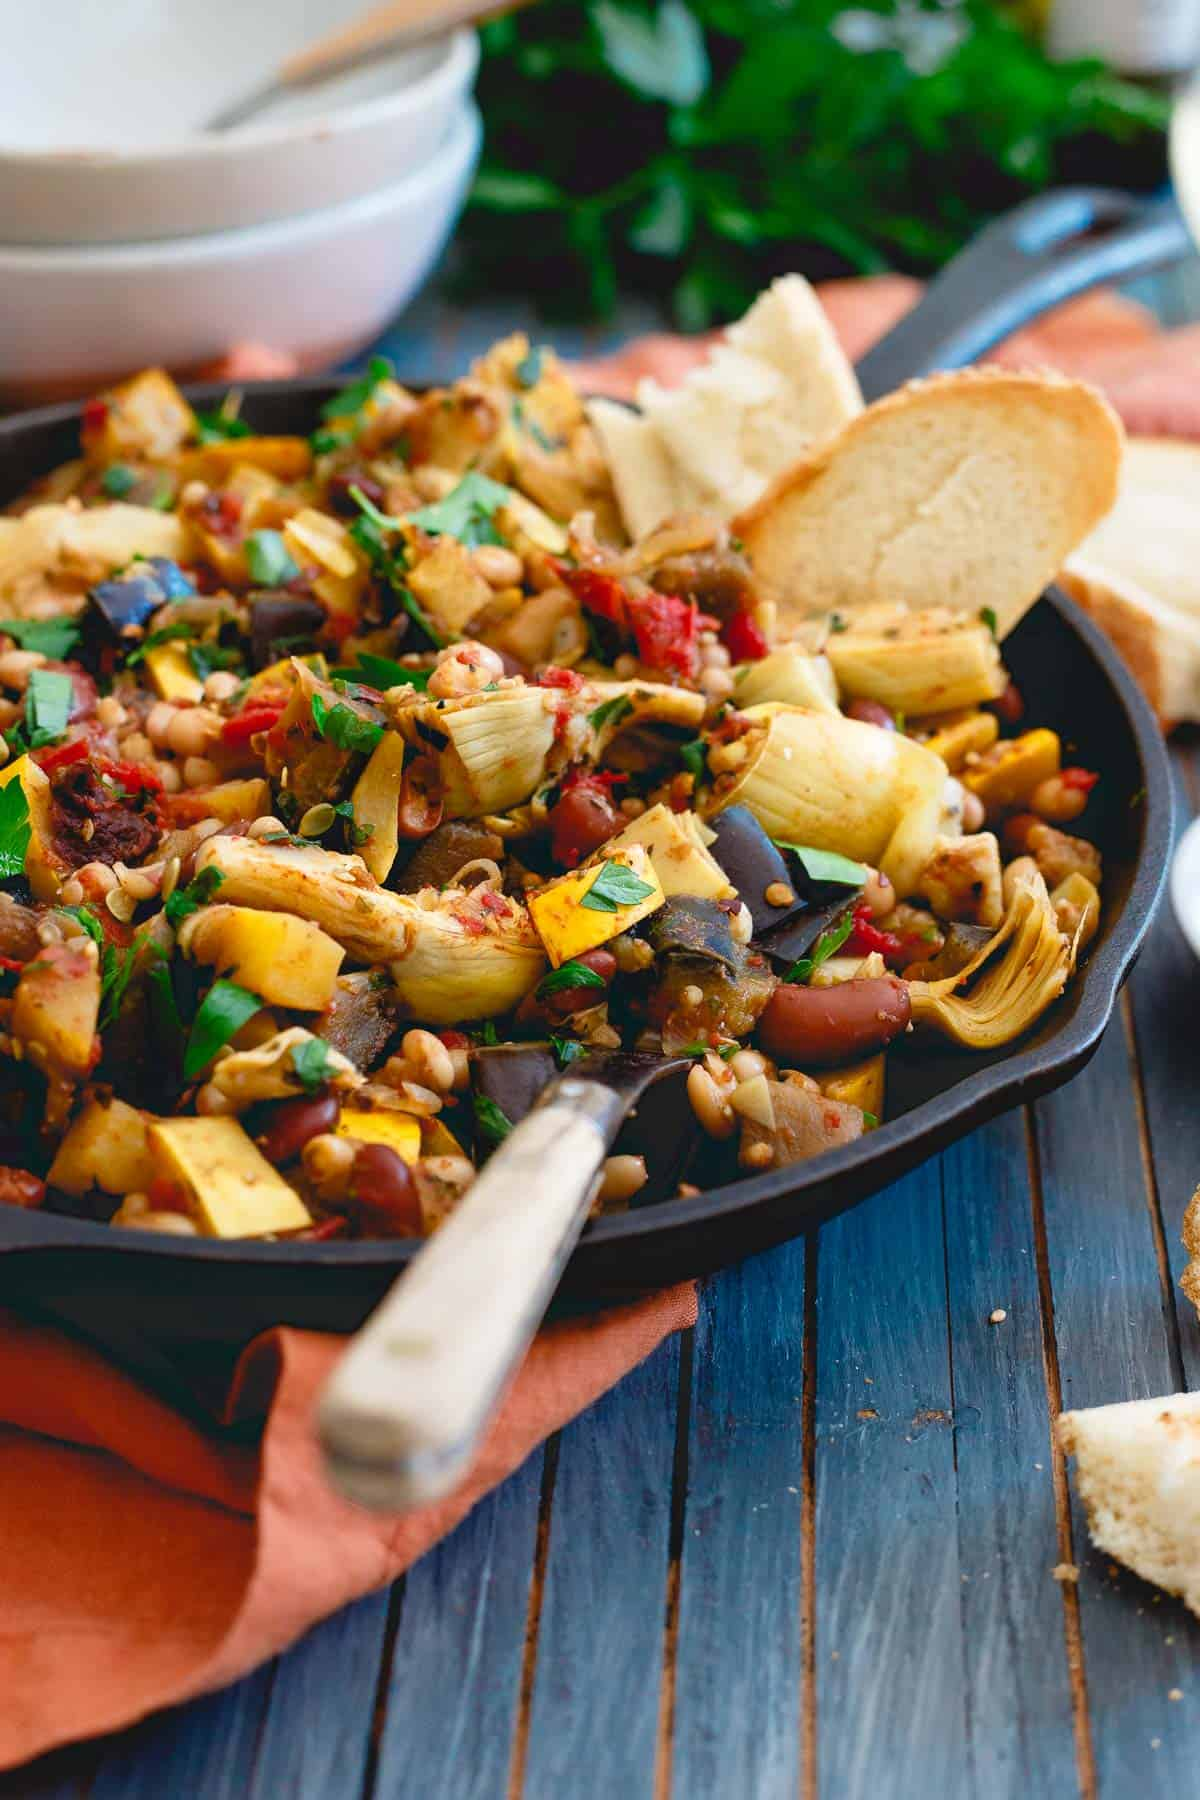 Use up all those summer garden vegetables in this easy skillet dinner.